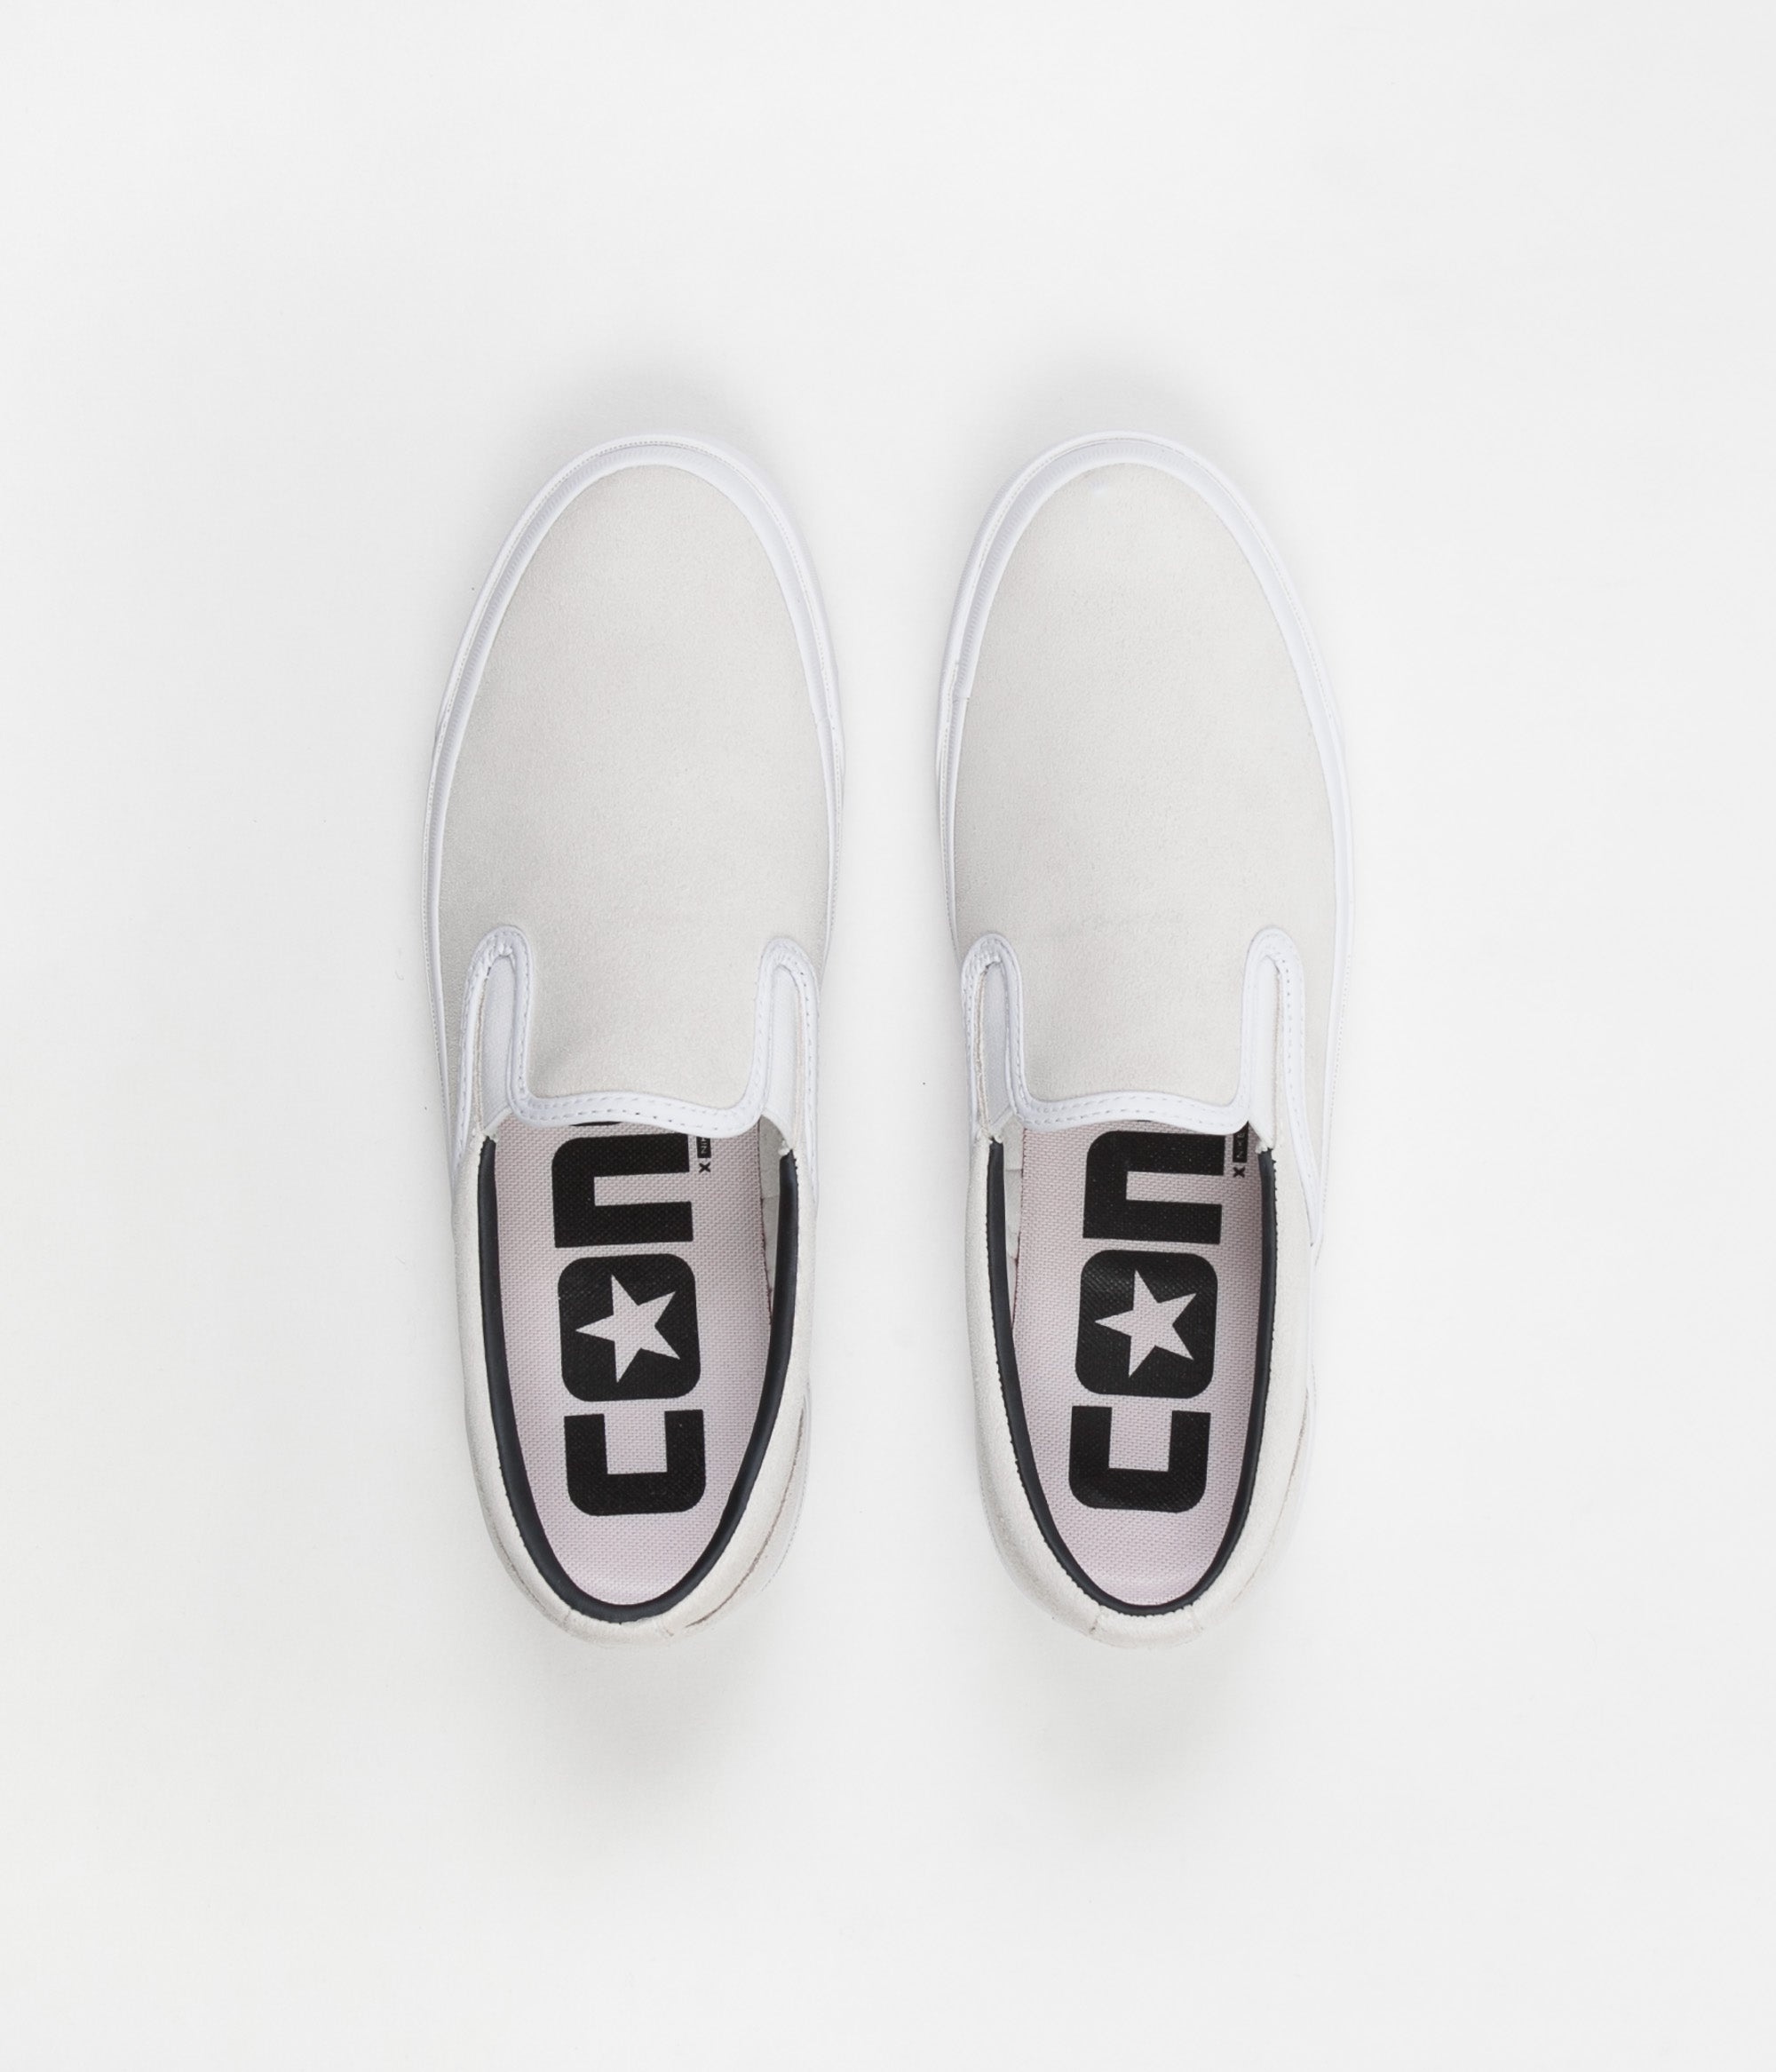 Converse One Star CC Slip On Shoes - White / Black / White